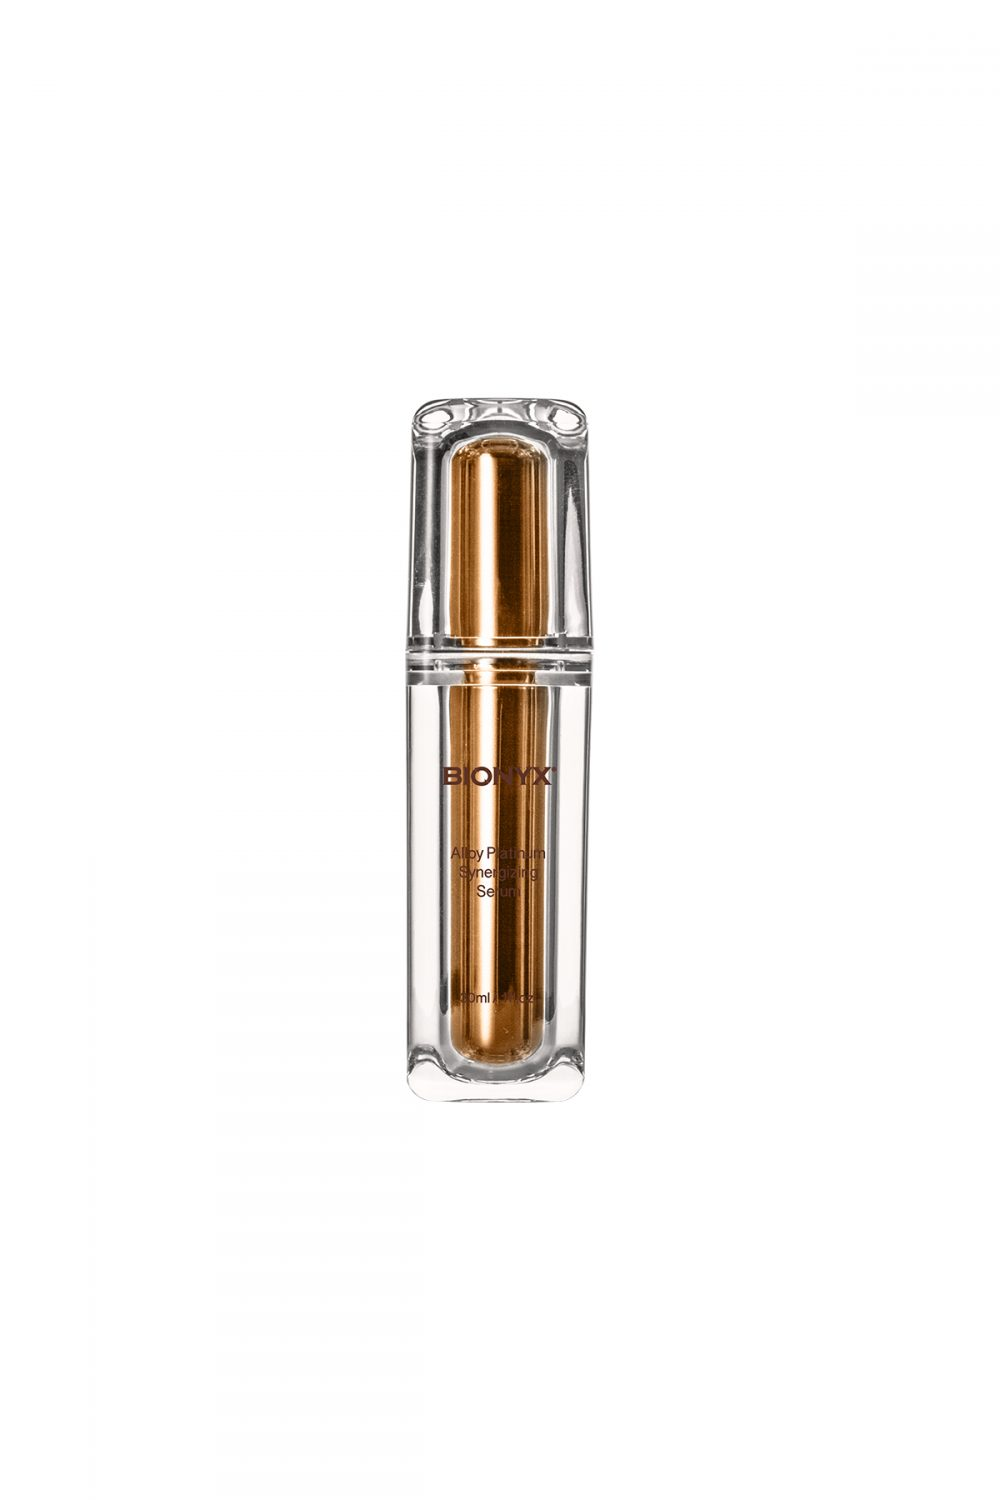 Bionyx Ageless Alloy Platinum Synergizing Serum